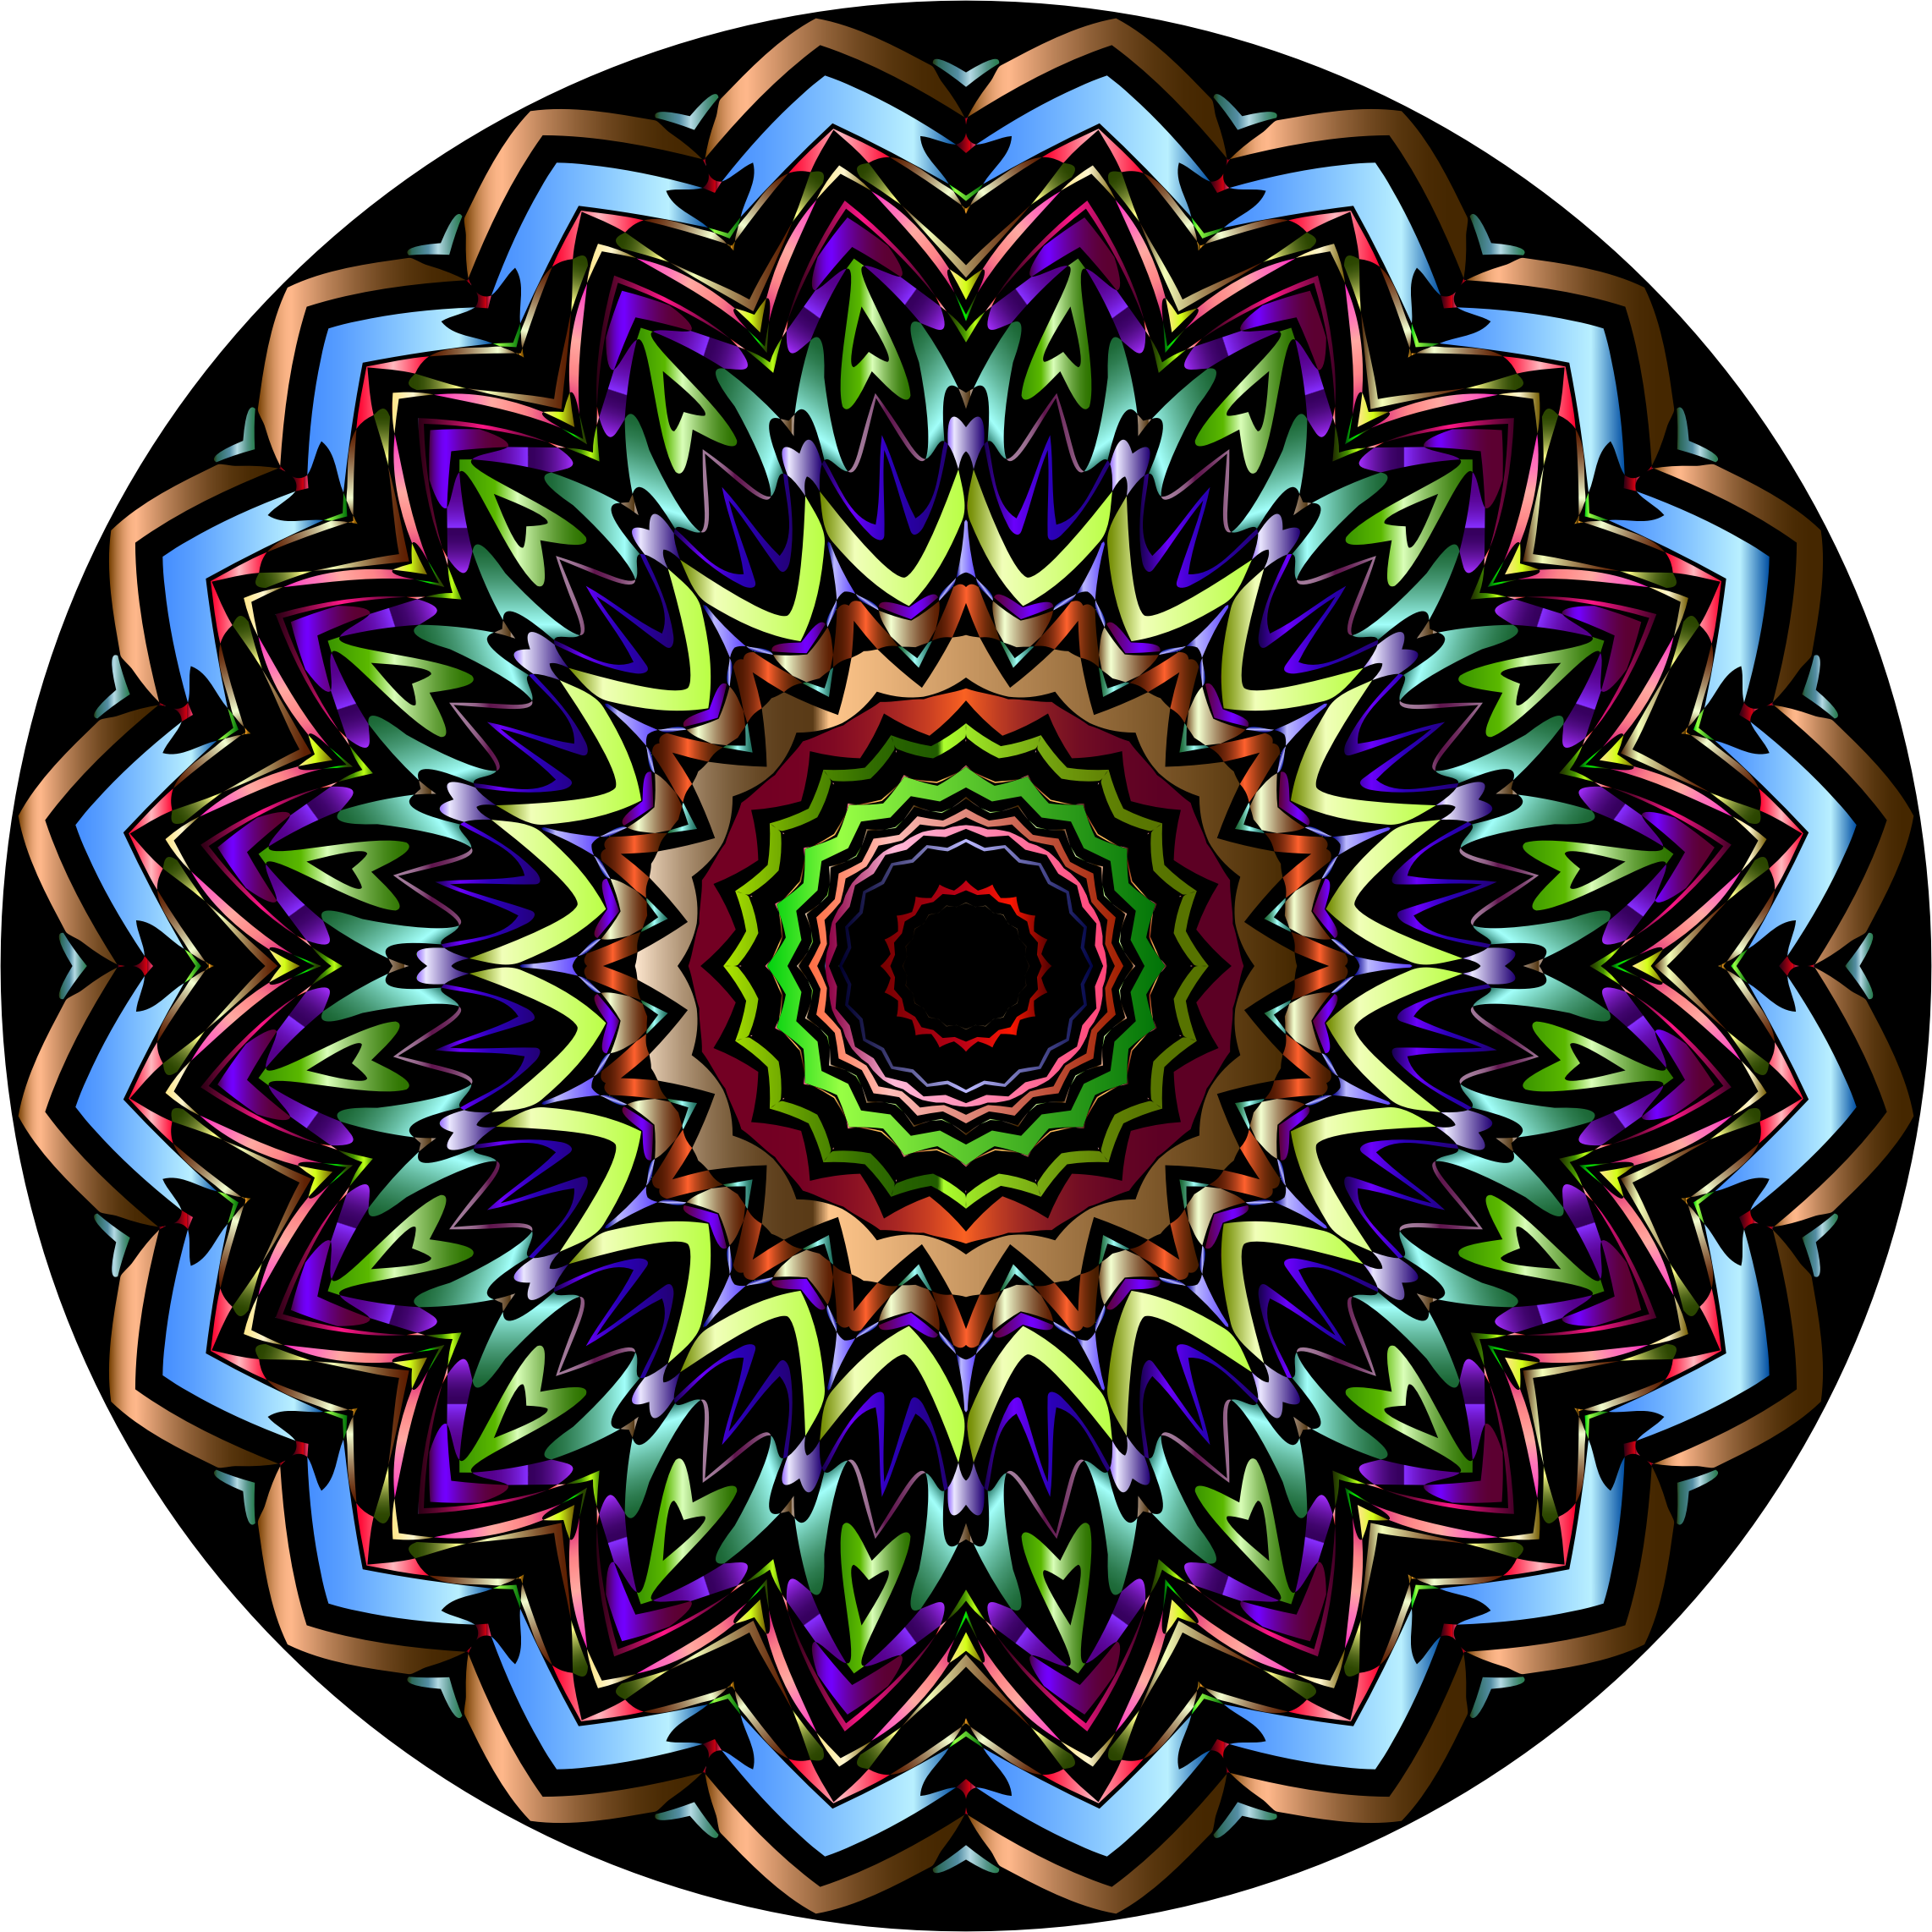 Chromatic Mandala 2 by GDJ